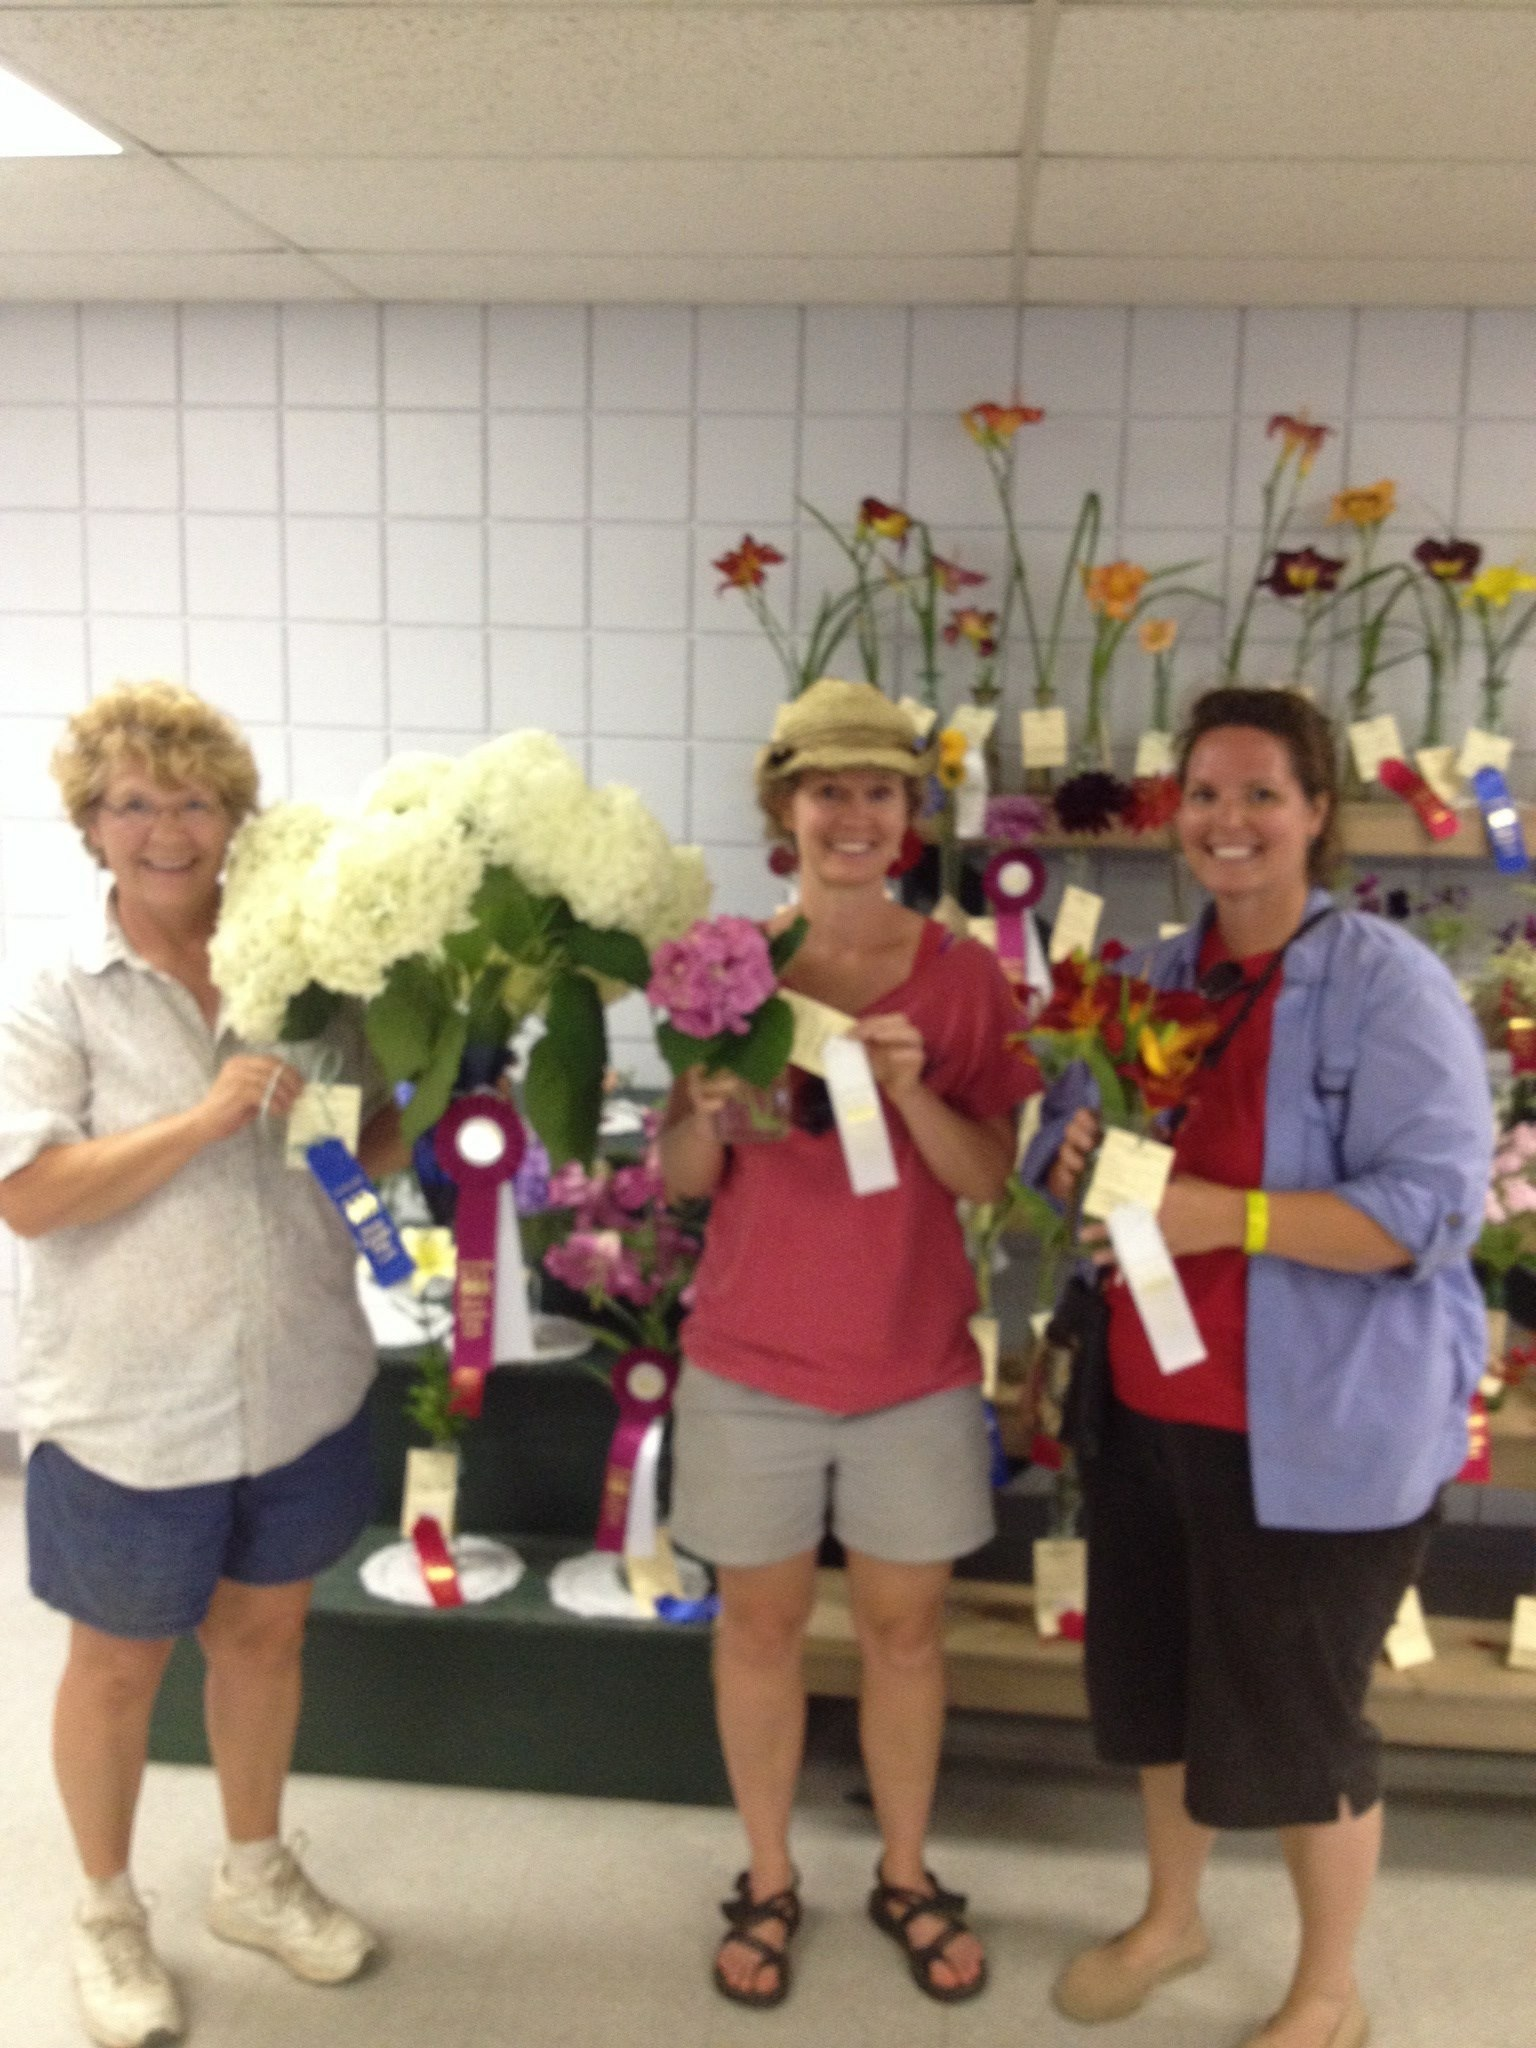 My mom, sister and I won ribbons at BC fair for our flowers.